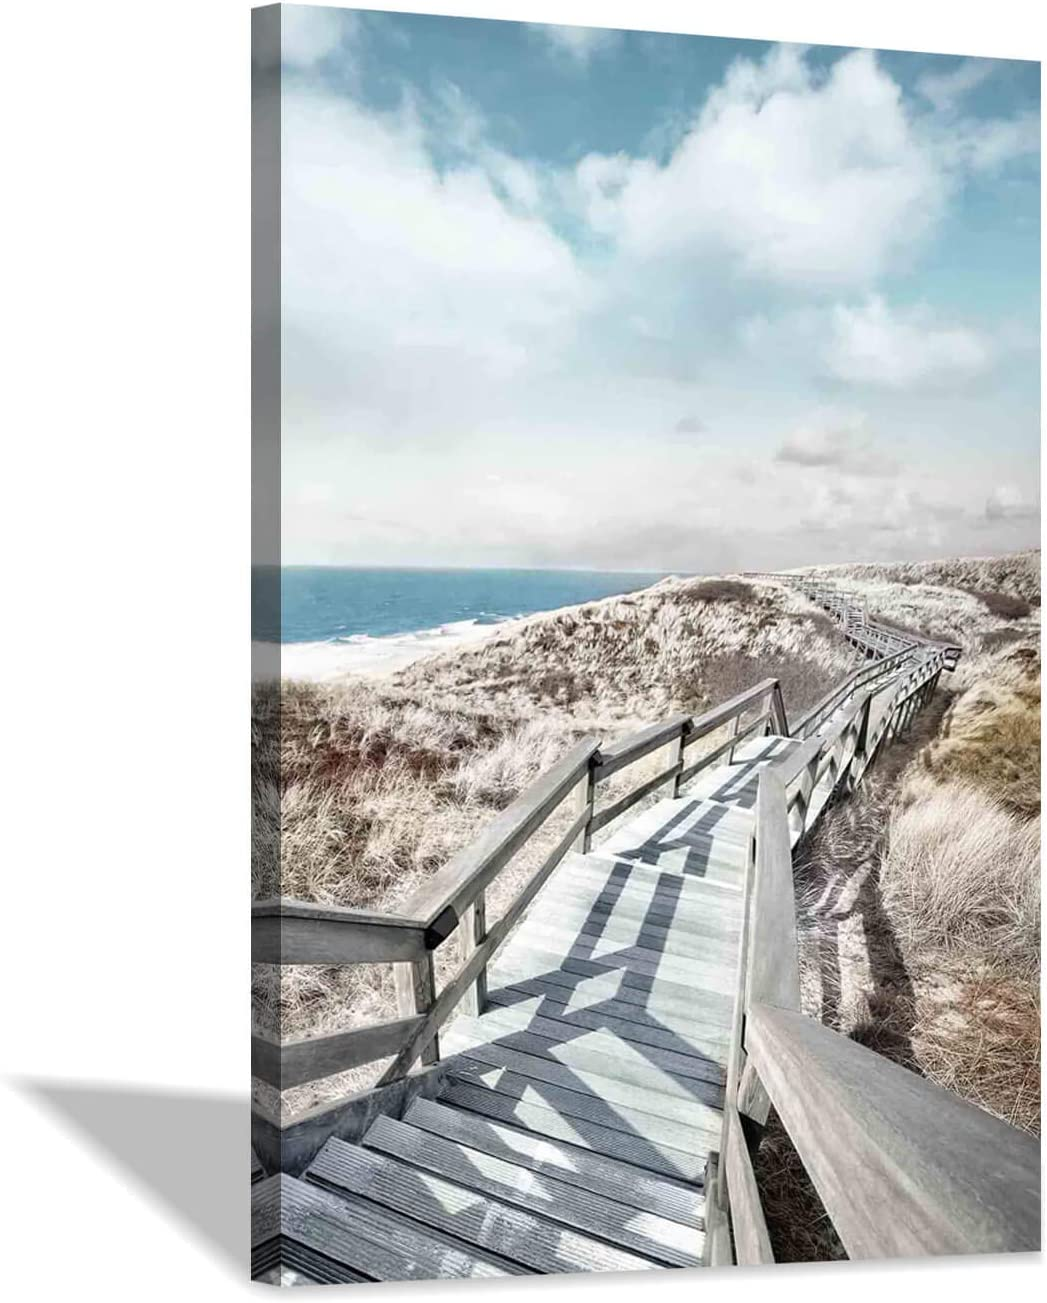 Beach Pier Canvas Wall Art: Boardwalk Stair Picture Graphic Art Painting for Wall Decor(24''x36'')